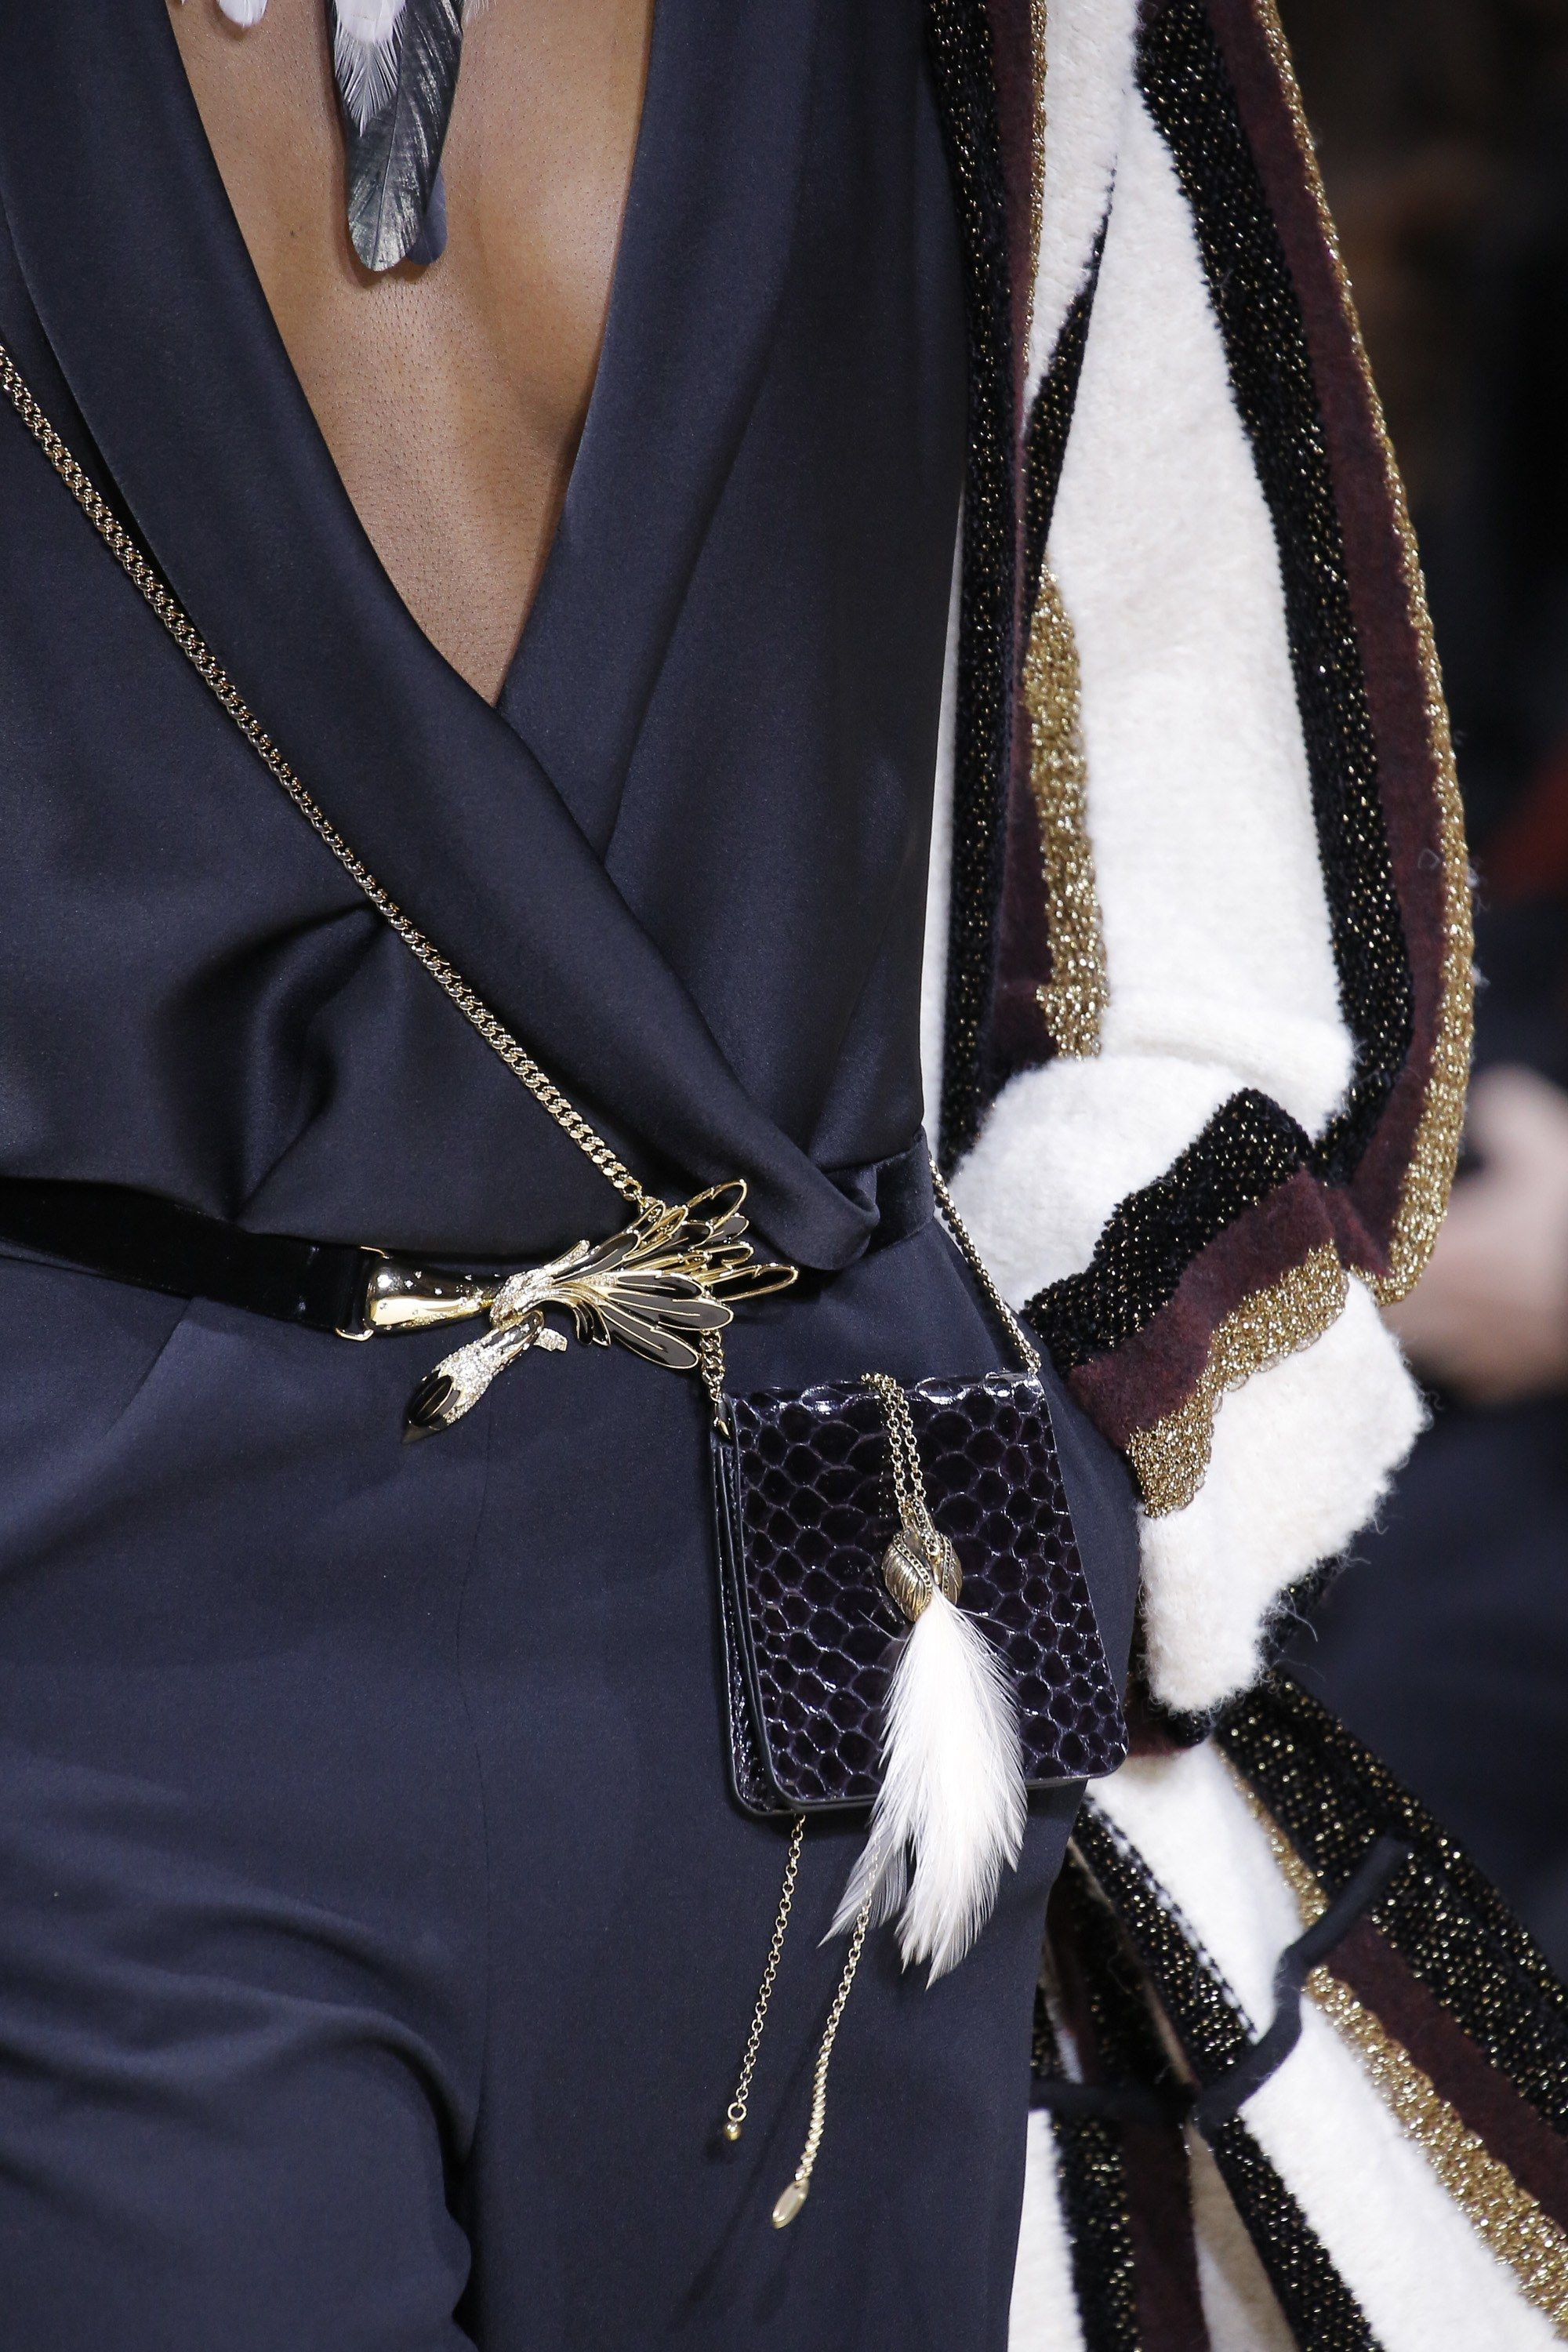 See detail photos for Lanvin Fall 2017 Ready-to-Wear collection.